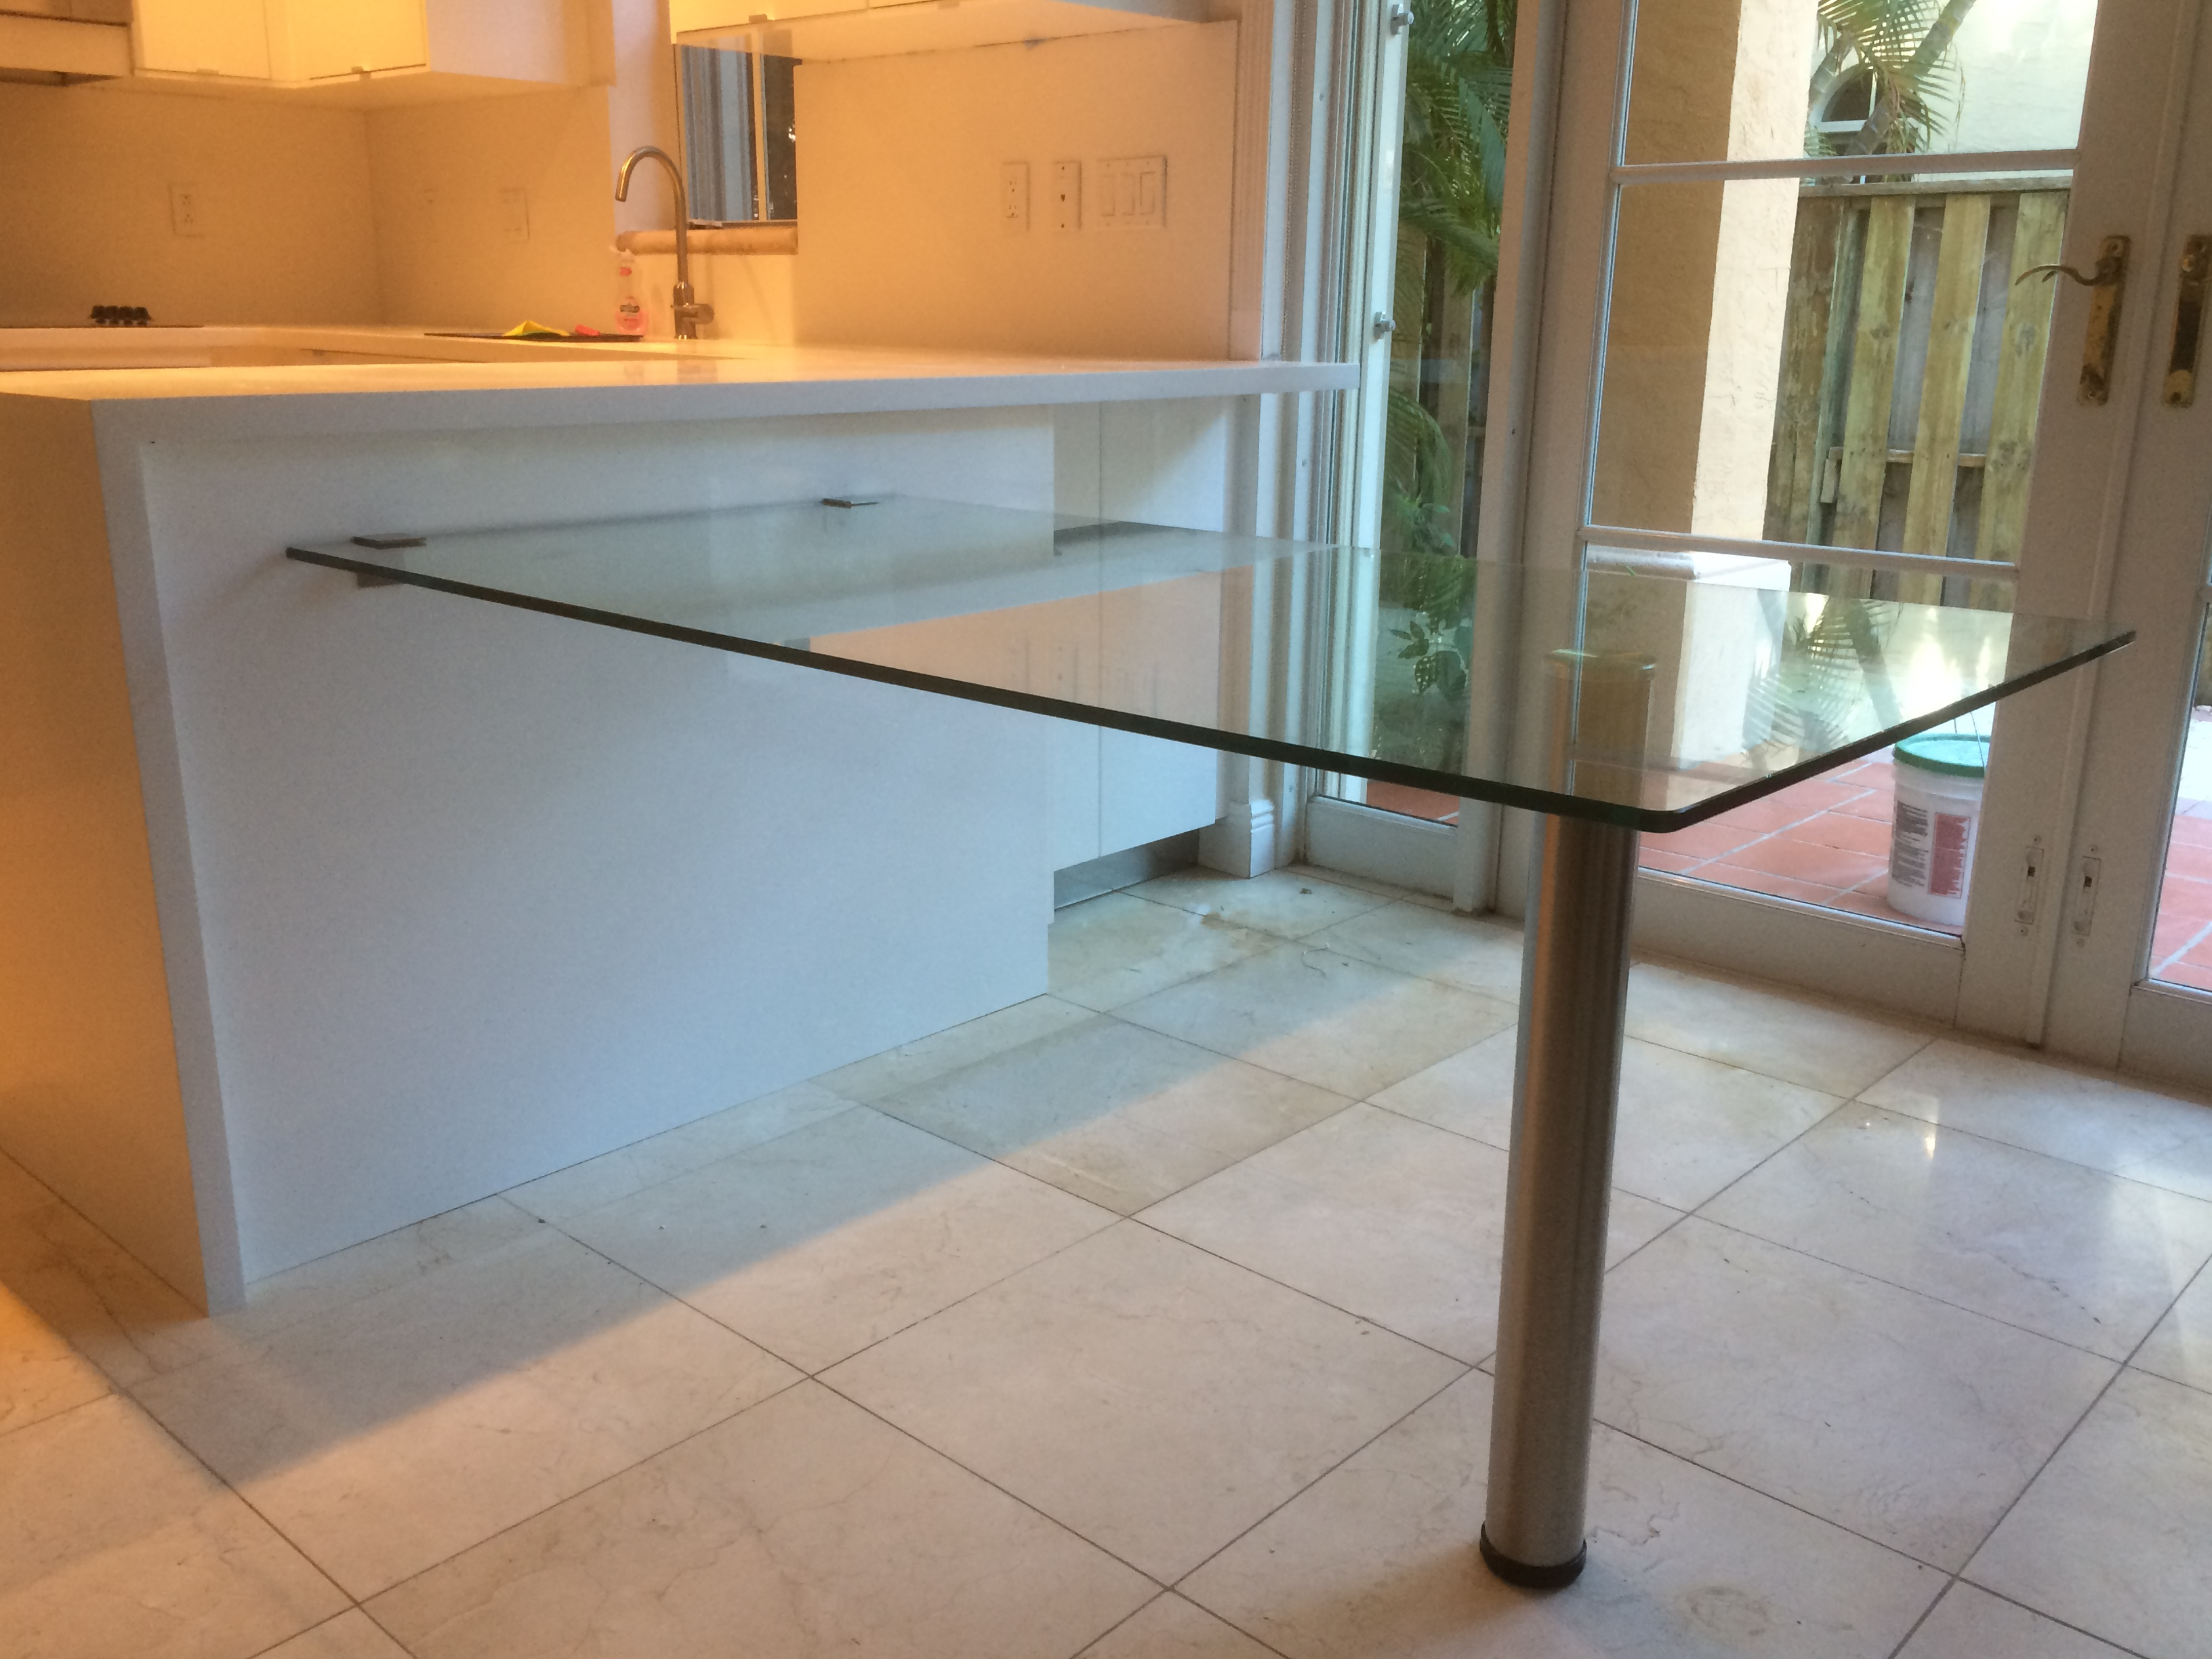 Ikea kitchen installer miami